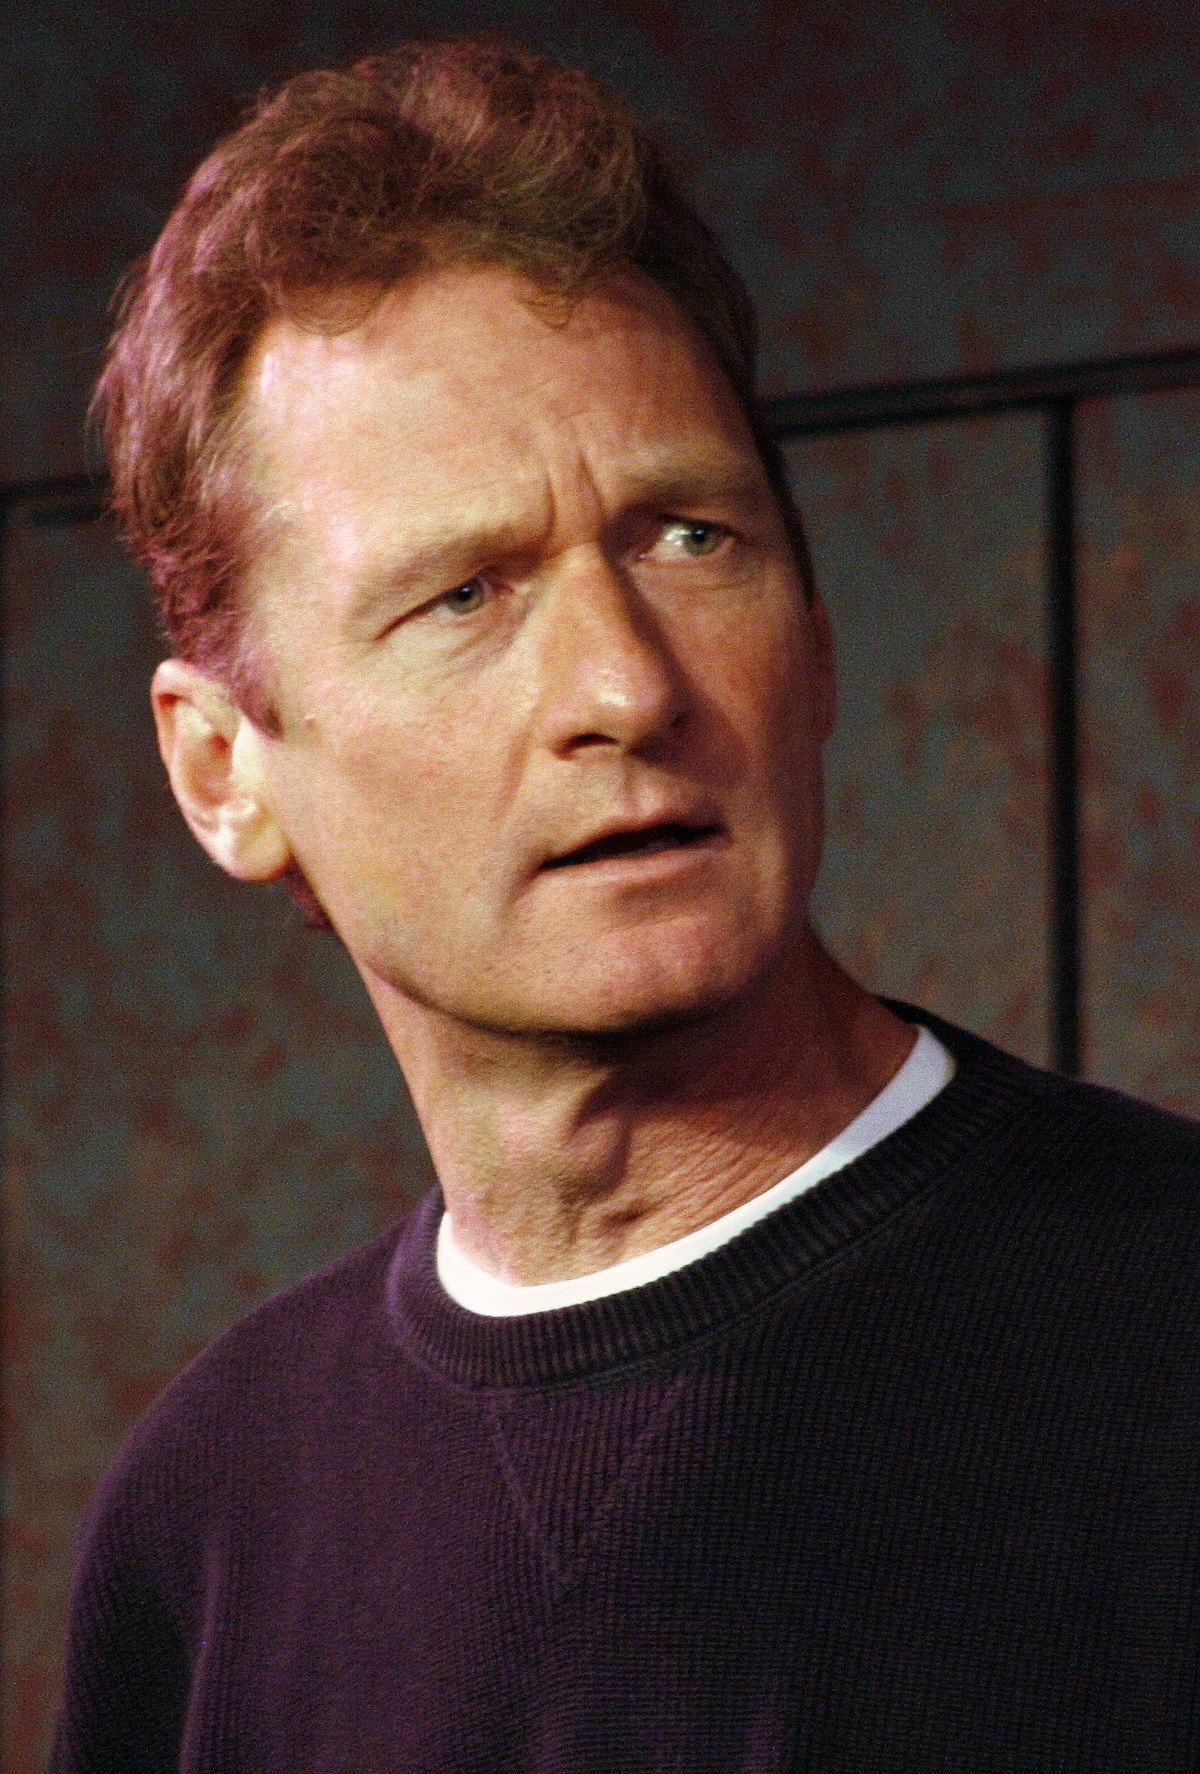 The 59-year old son of father Sonny Stiles and mother Irene Stiles Ryan Stiles in 2018 photo. Ryan Stiles earned a  million dollar salary - leaving the net worth at 8 million in 2018